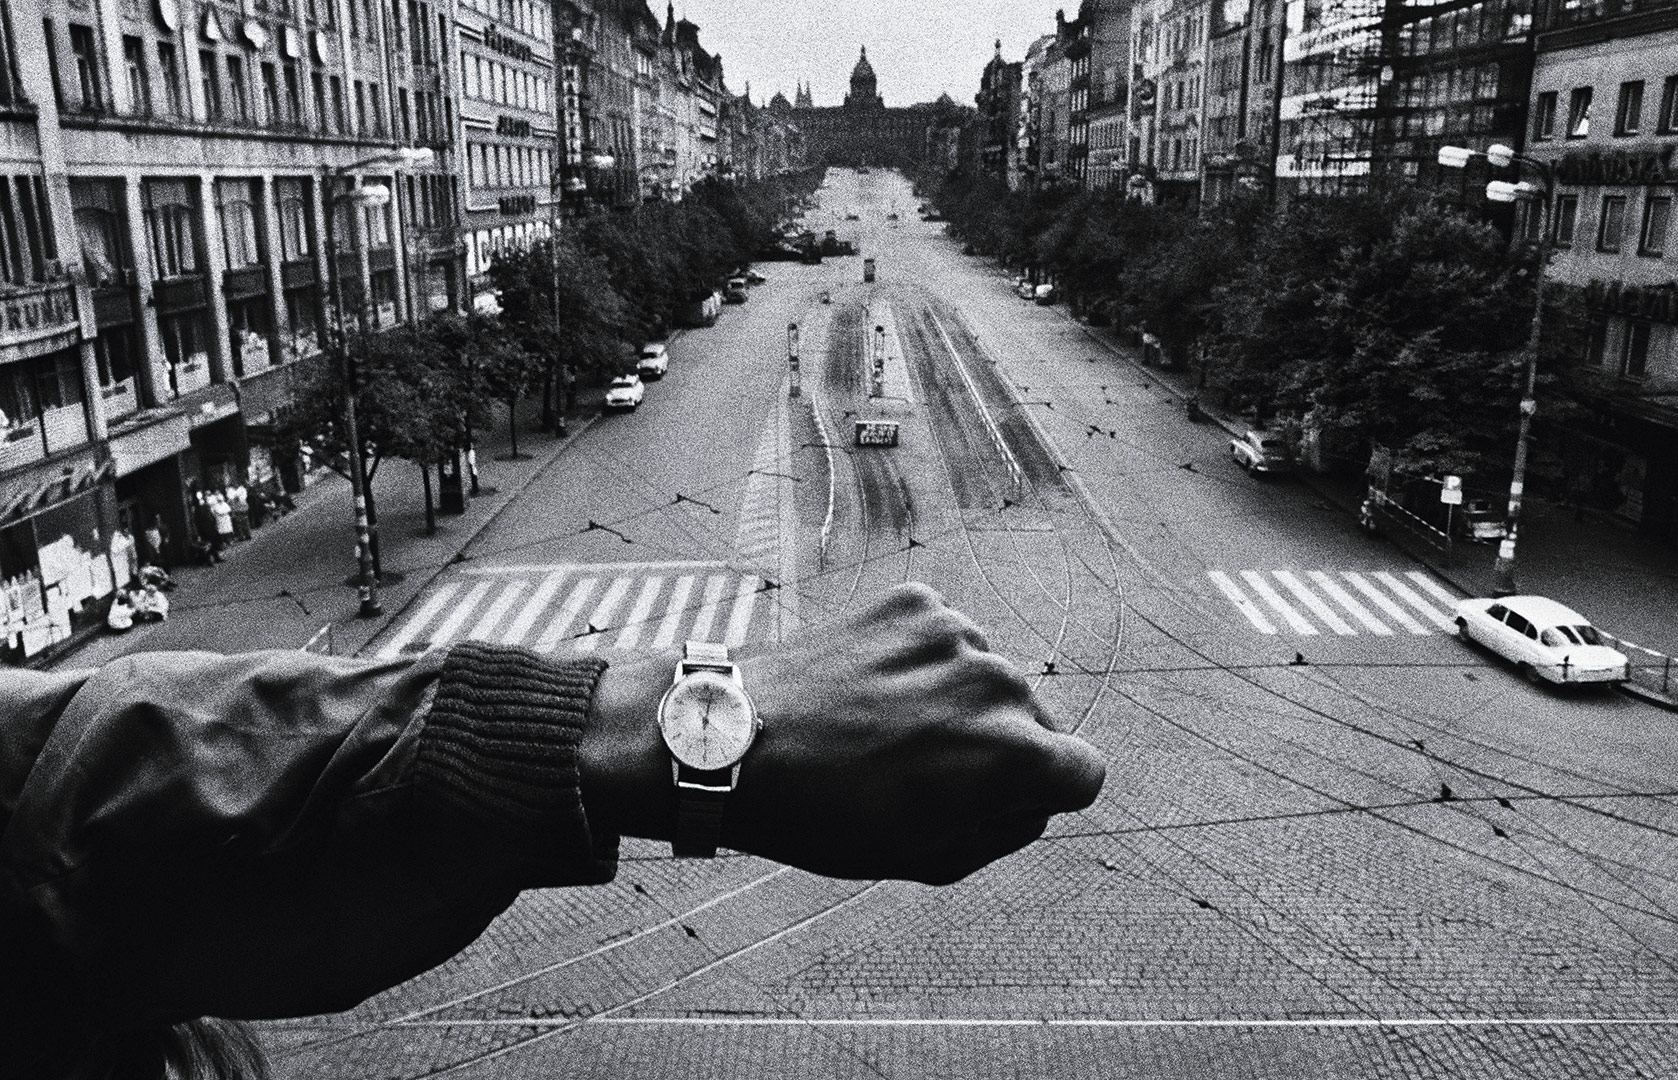 time-100-influential-photos-josef-koudelka-invasion-prague-60